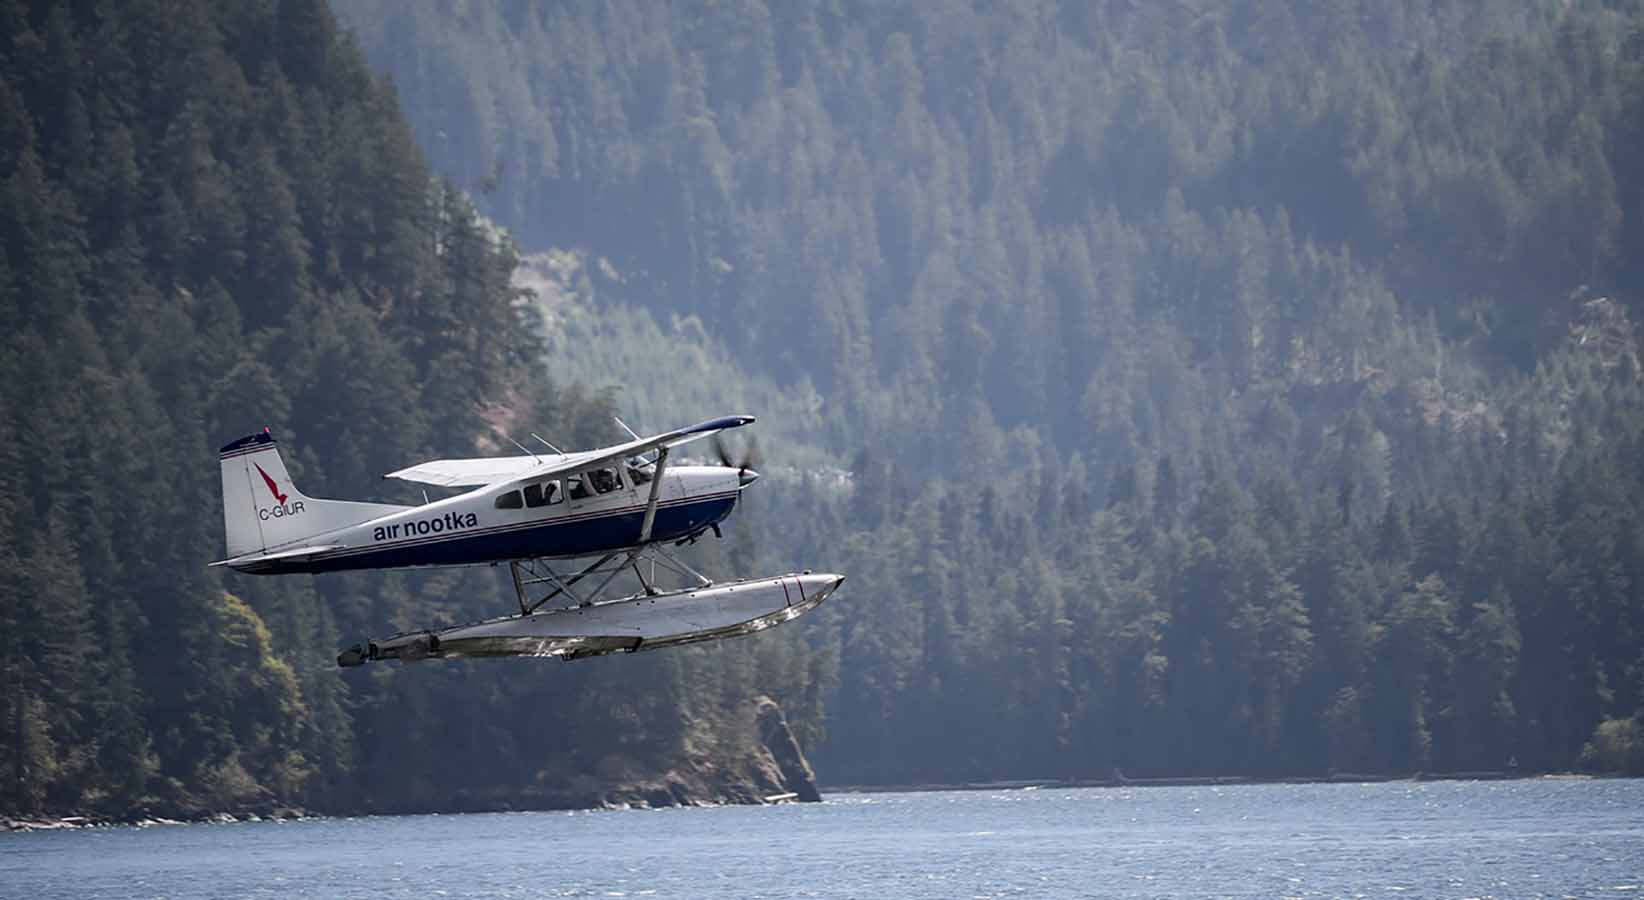 Float plane taking off from the water